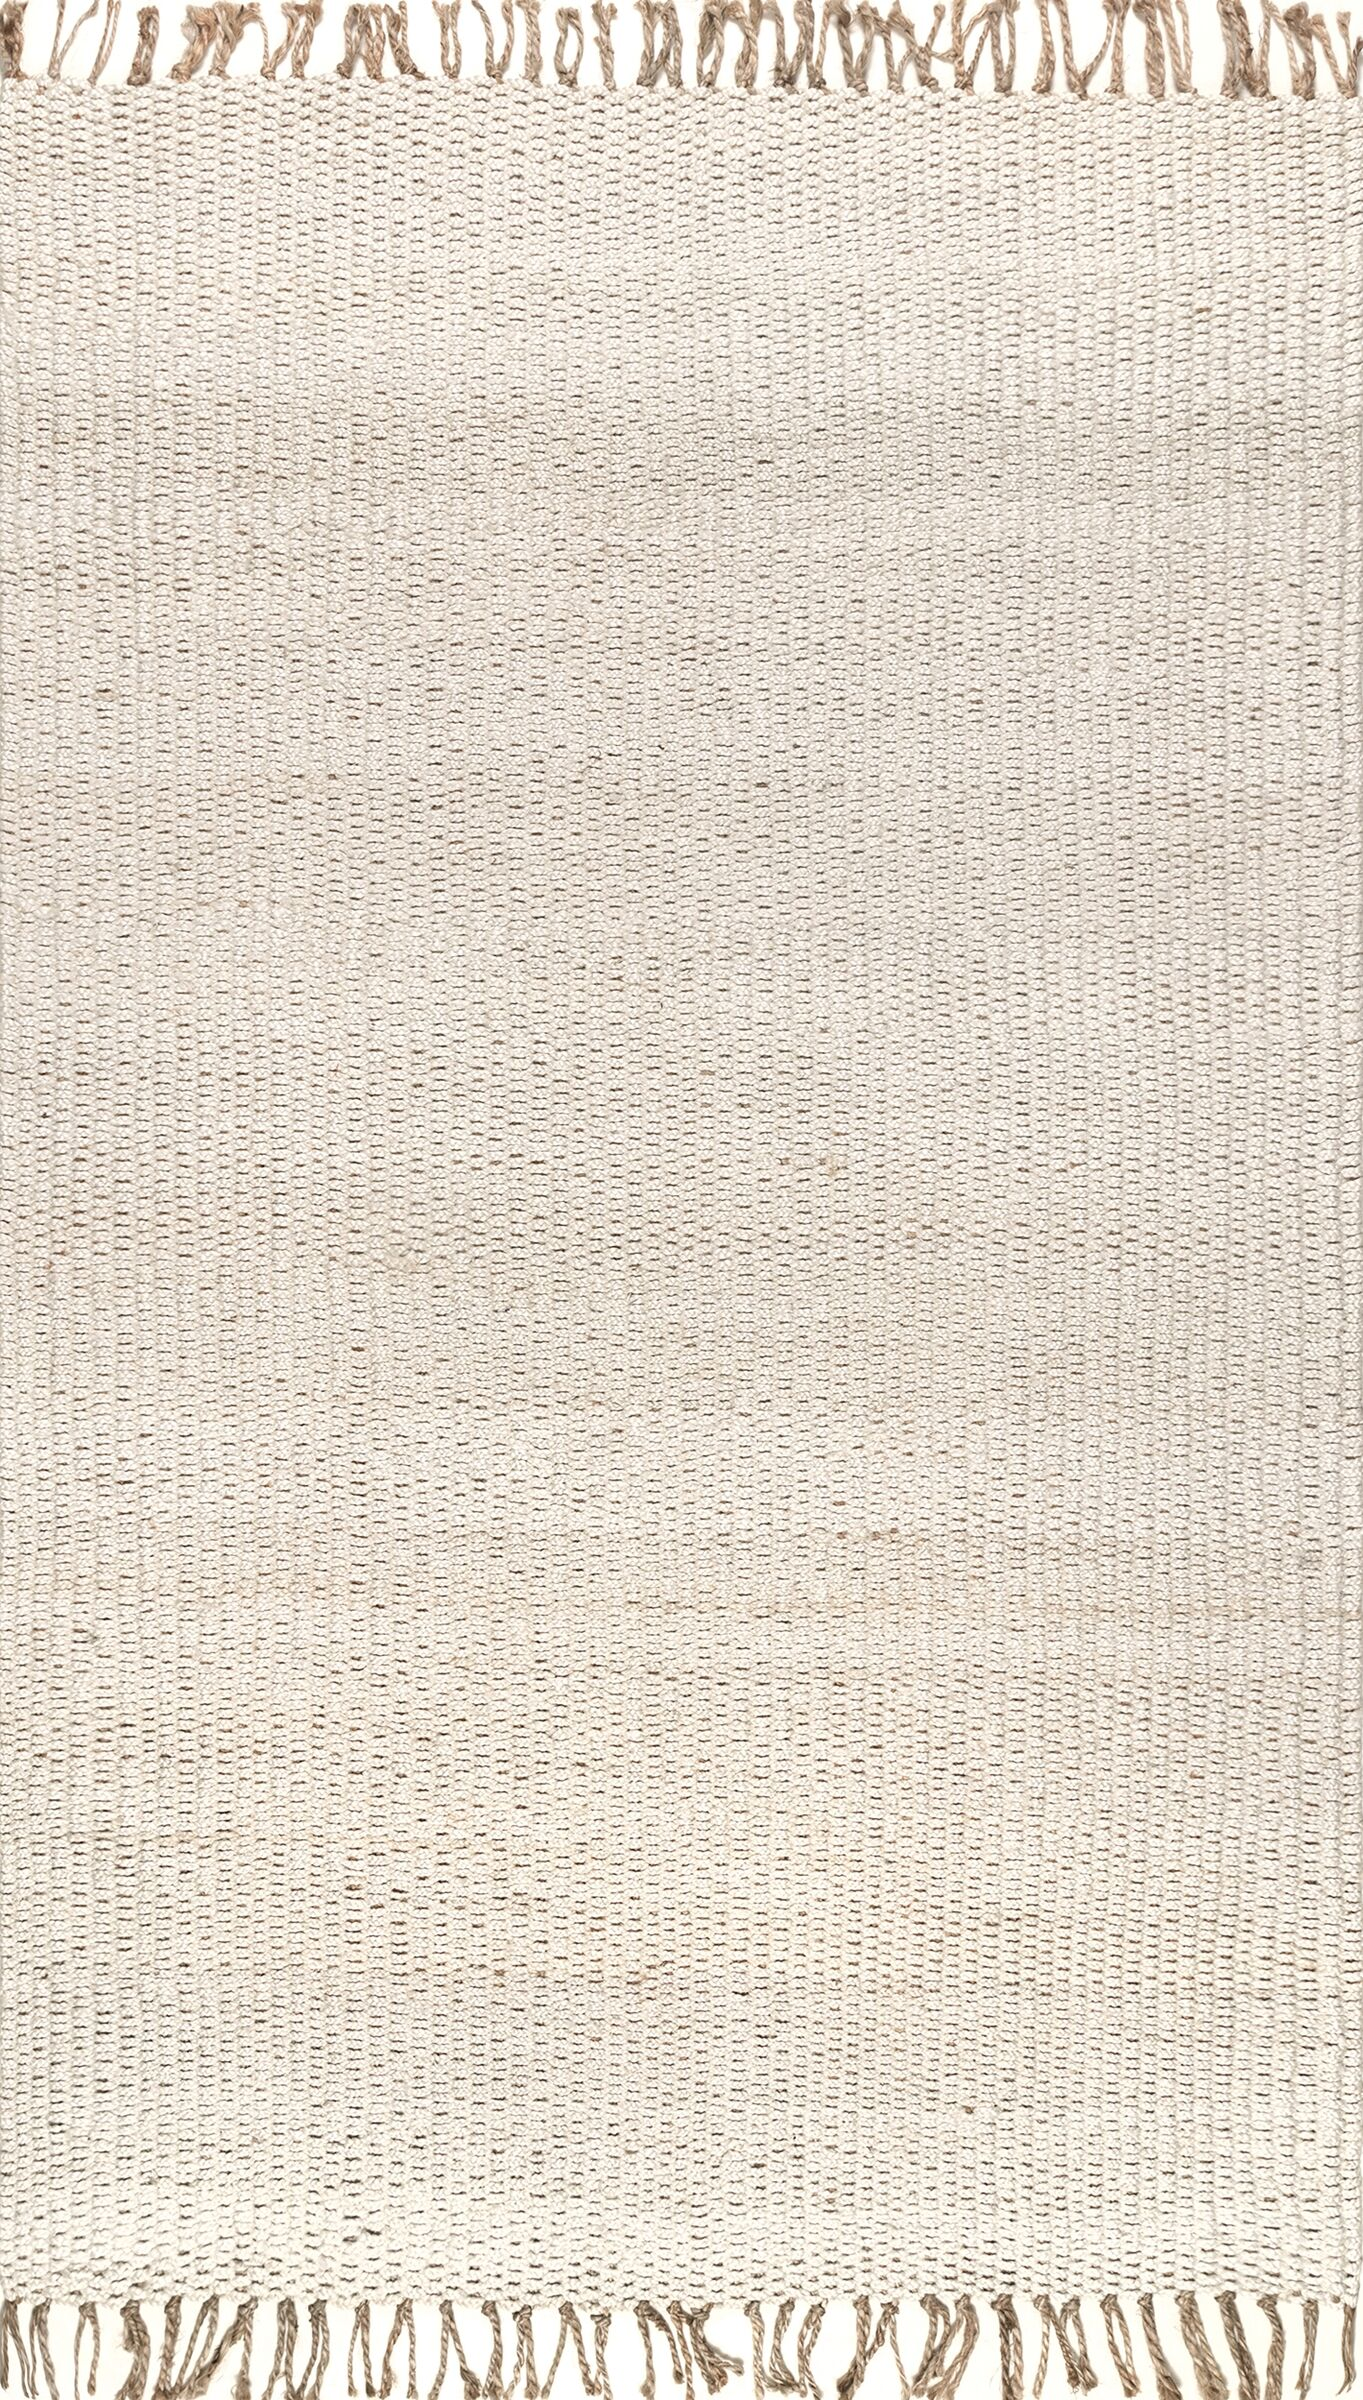 Parthenia Hand Woven Beige Area Rug Rug Size: Rectangle 5' x 8'